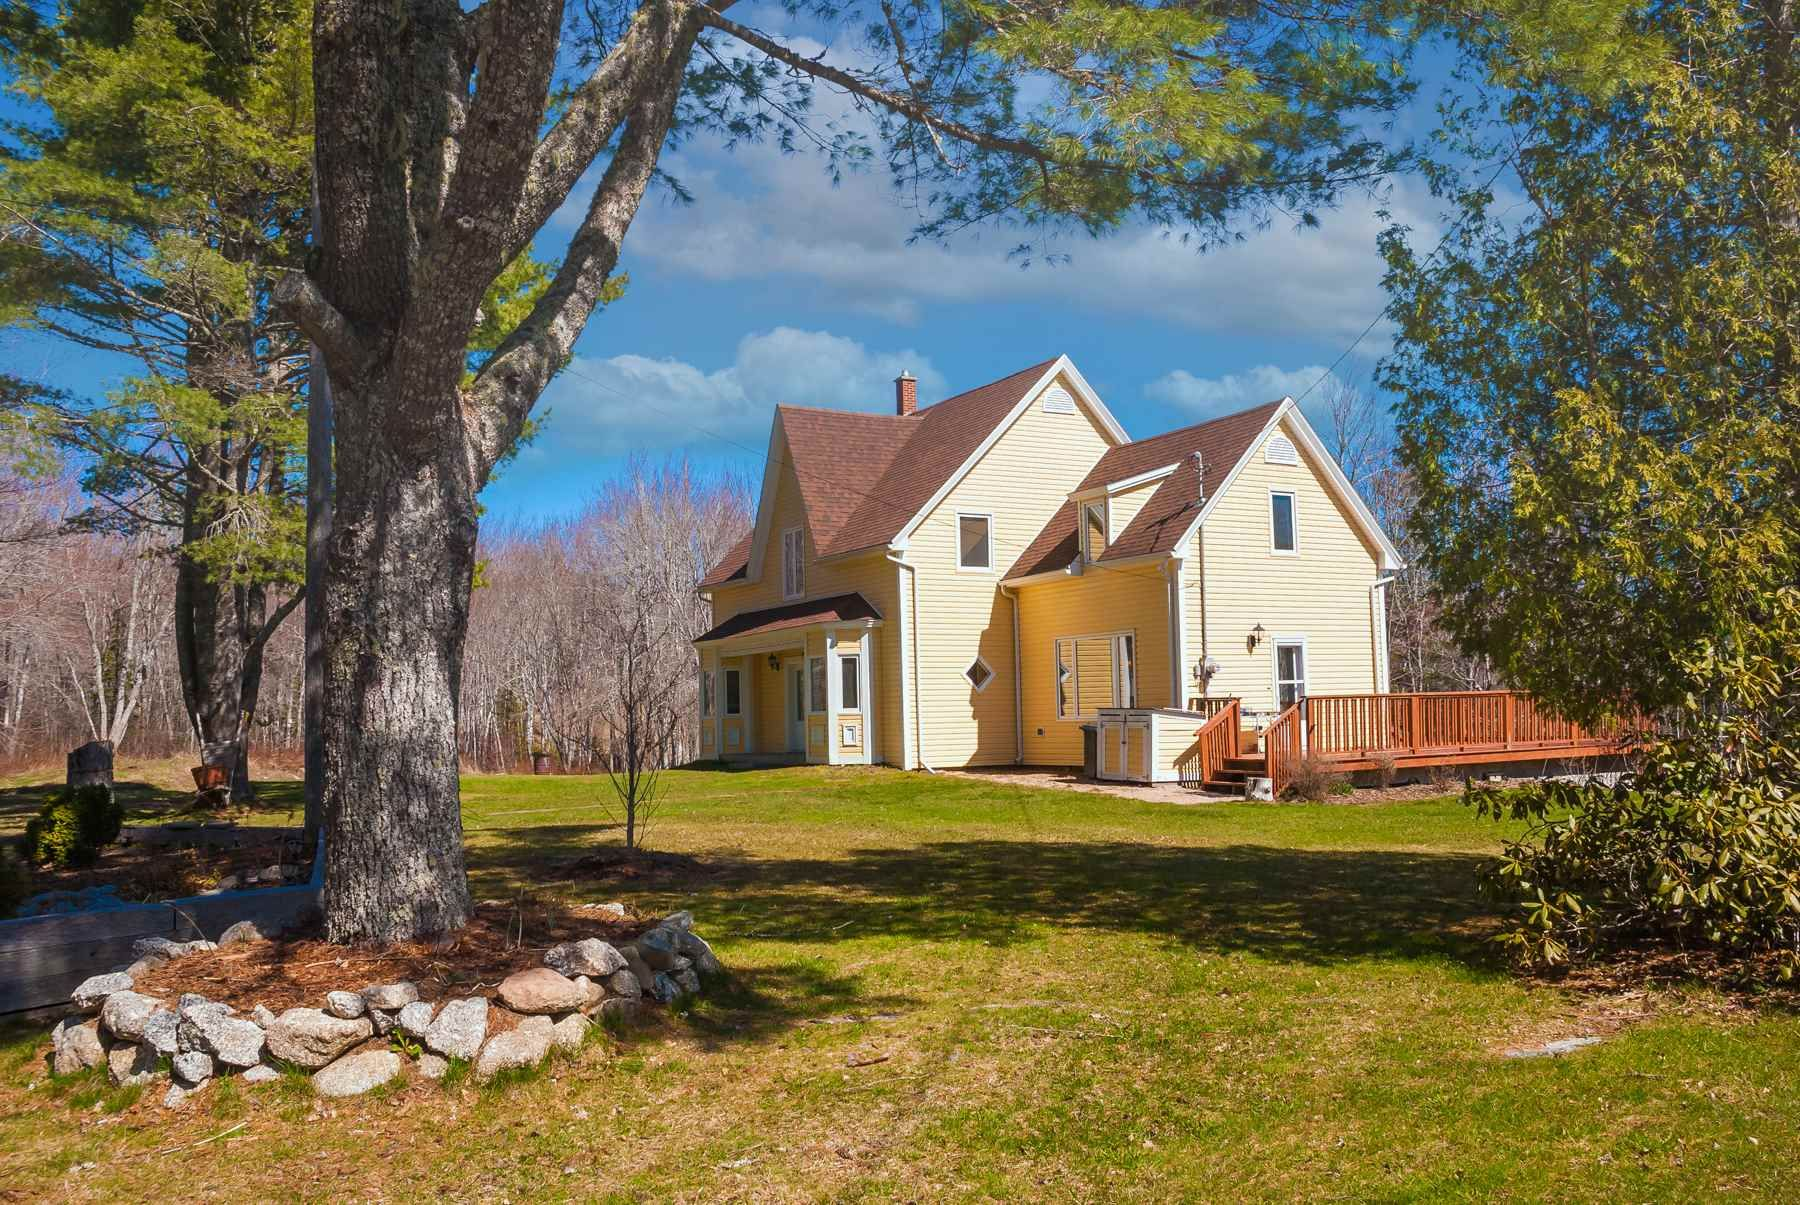 Main Photo: 26 Highway 10 in Springfield: 400-Annapolis County Residential for sale (Annapolis Valley)  : MLS®# 202109130